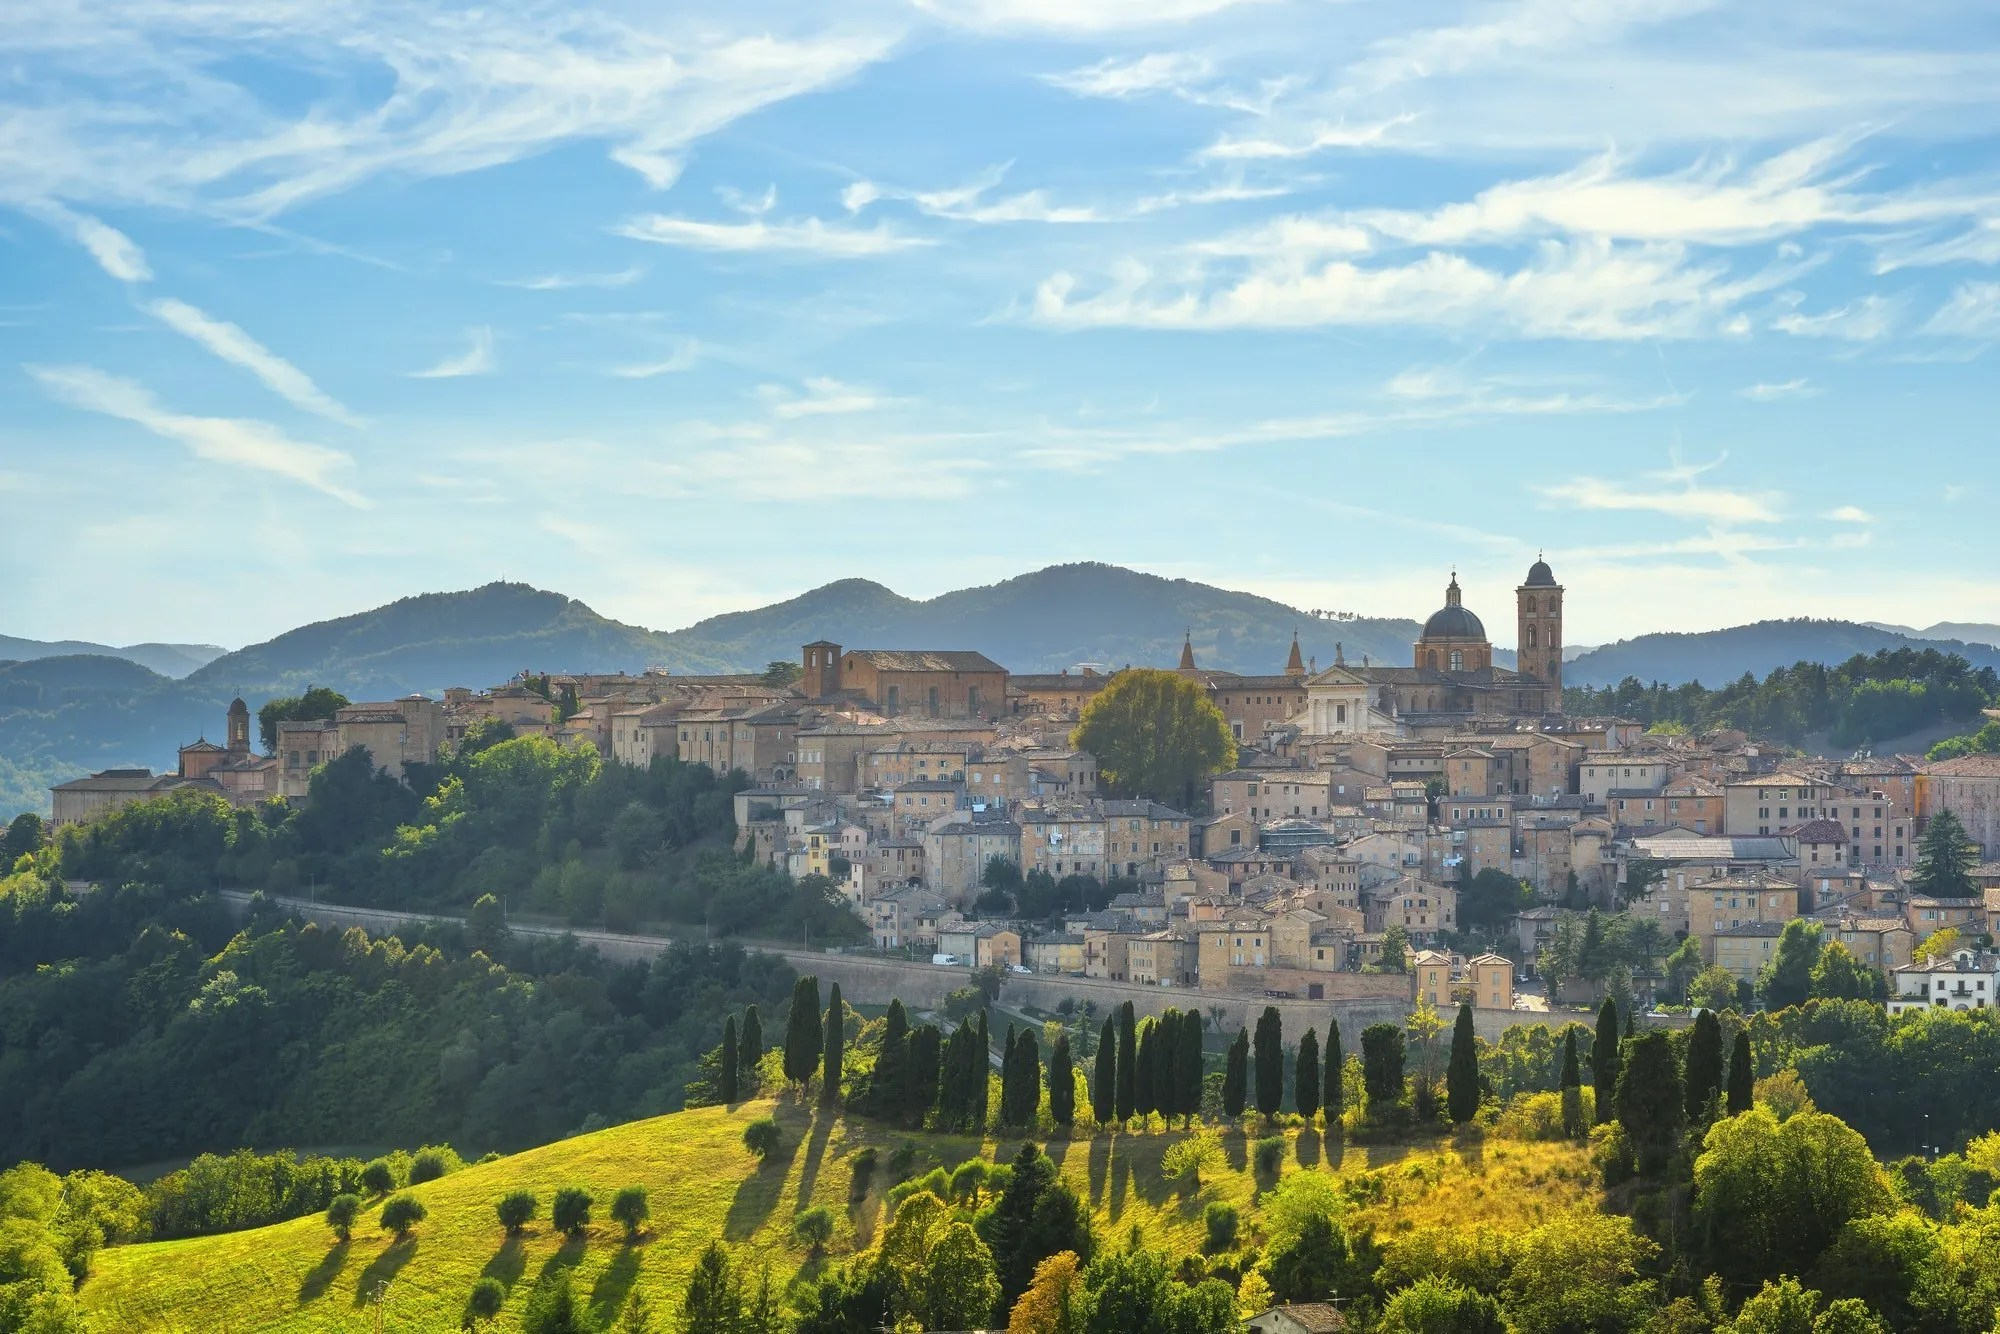 Urbino city skyline and countryside landscape. Marche region, Italy.